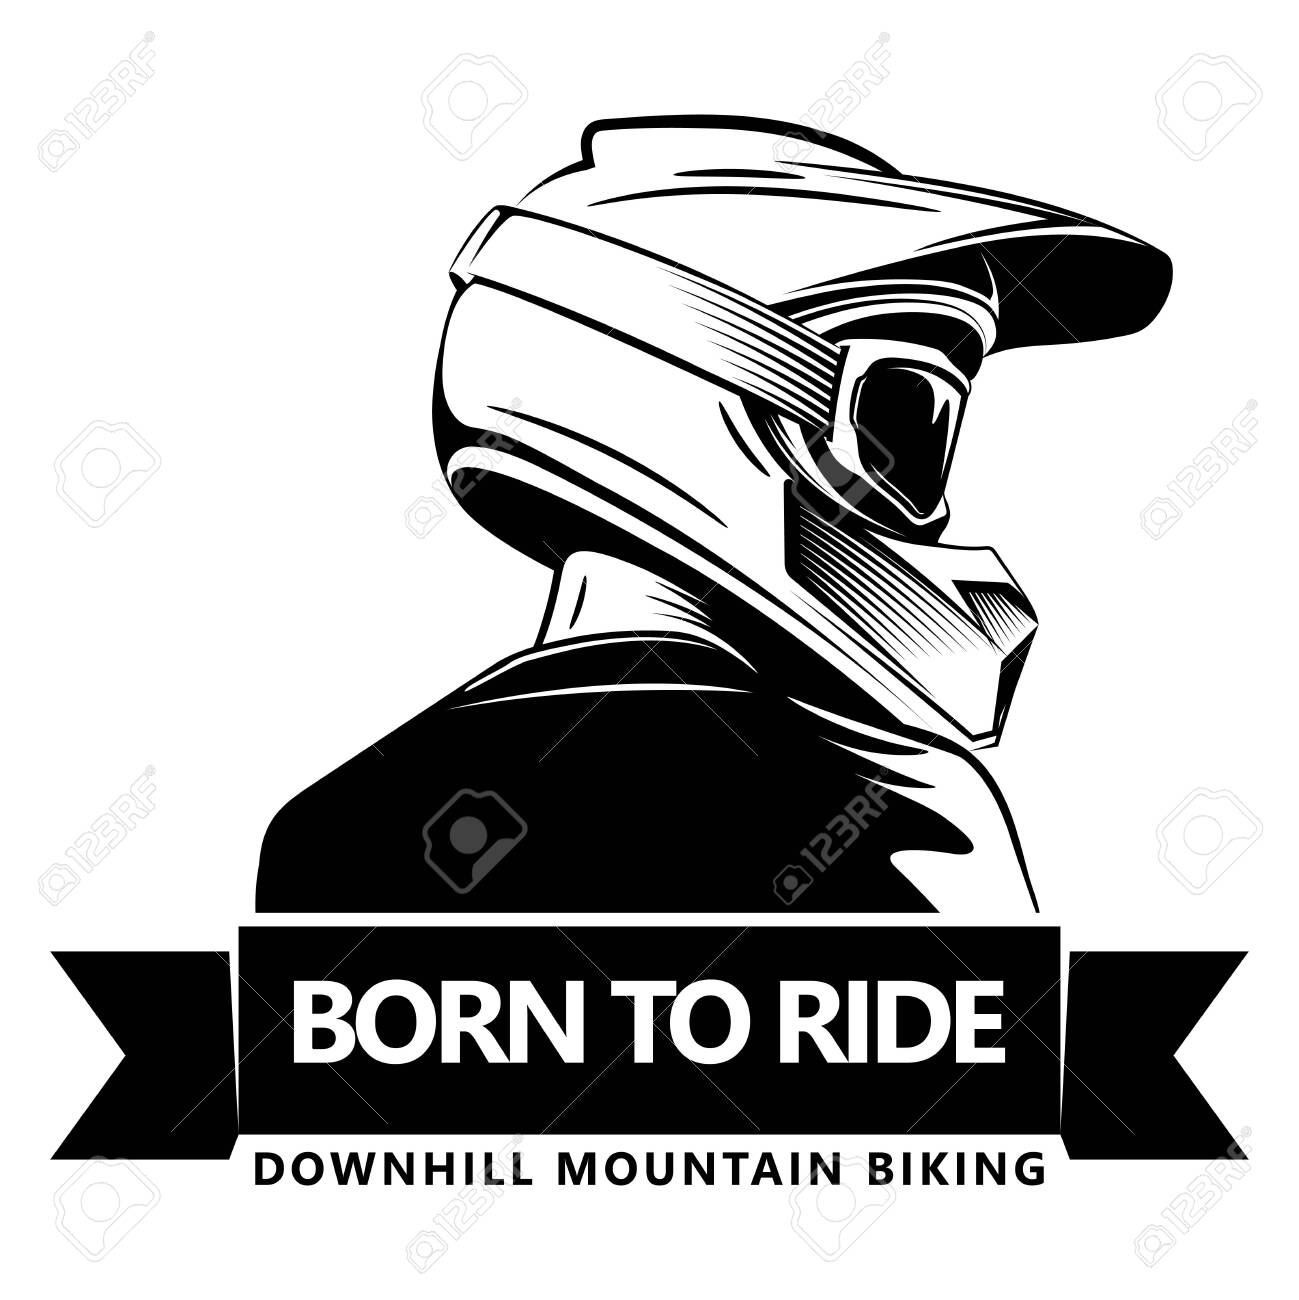 Back Shot Of Man With Full Face Motocross Helmet Extreme Sport Royalty Free Cliparts Vectors And Stock Illustration Image 128059311